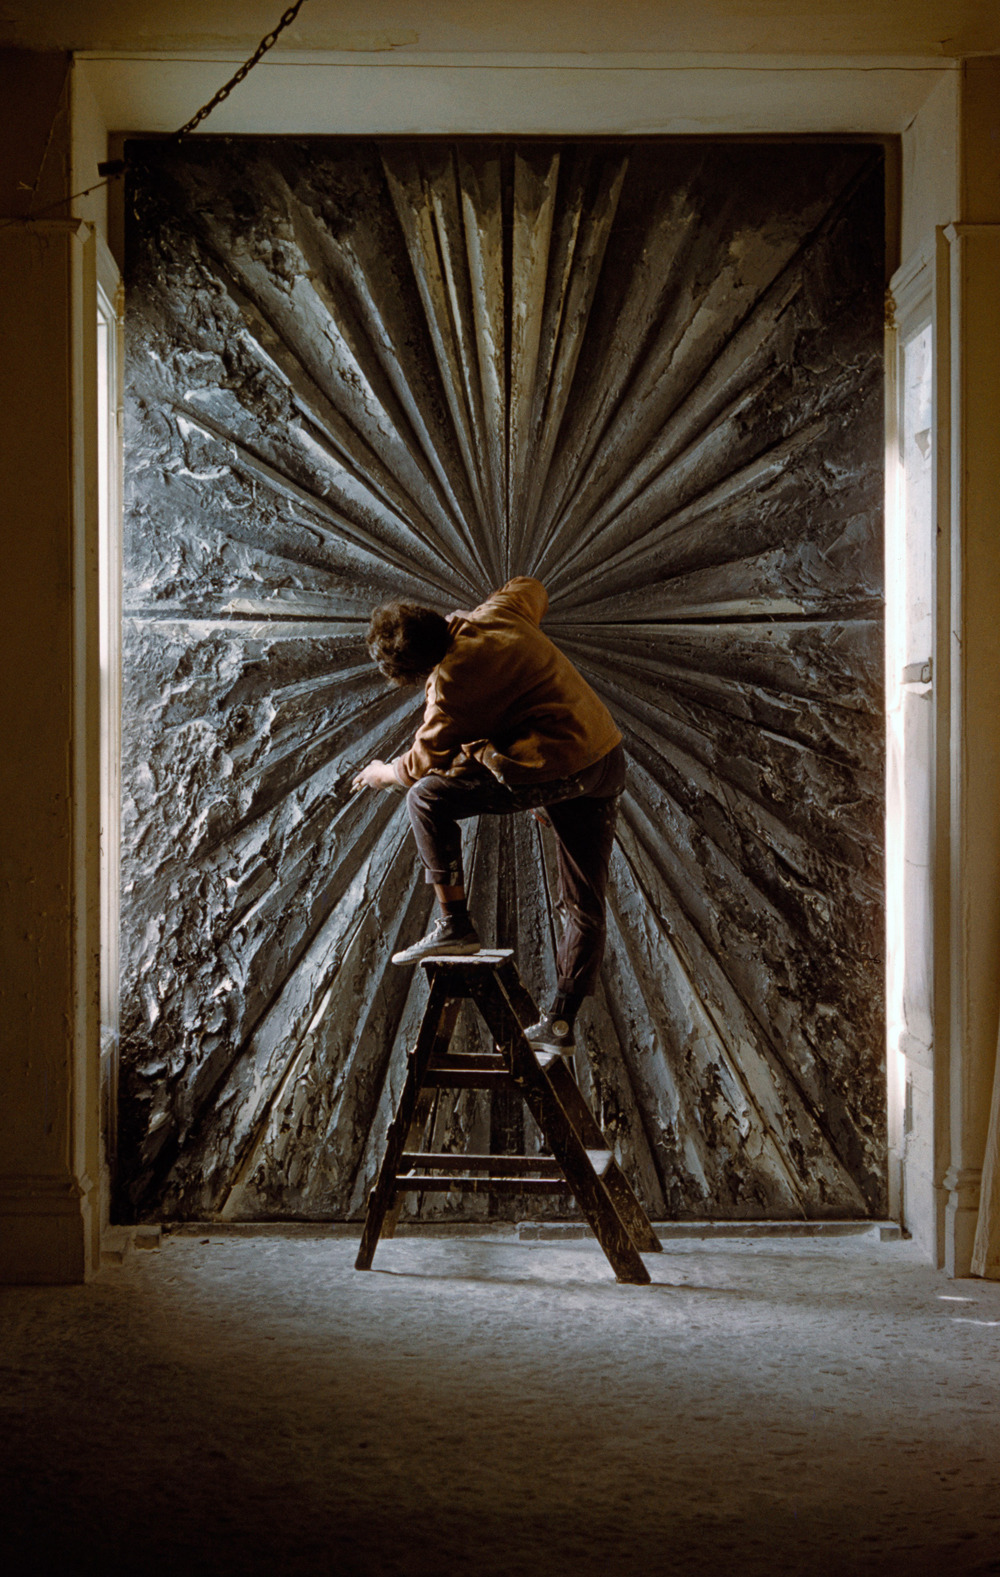 "likeafieldmouse:  Jay DeFeo - The Rose (1958-69) ""The story of Jay DeFeo and The Rose is both a cautionary tale of obsession and an inspiring tale of determination and belief. She began working on The Rose in 1958. She was 29 years old and for the next eight years, she did little else but sit on a stool in her studio, smoking cigarettes, drinking brandy while she painted and scraped away at her vision. First titled The Deathrose, then The White Rose and finally just The Rose, DeFeo only stopped working on the painting when an increase in rent forced her from her studio. By then it was 1966, her marriage was ending, she was in fragile physical and mental health, and The Rose had become too large to fit out the door.  At nearly 12 feet high and in places eight inches thick, The Rose was constructed from layer upon layer of built up and scraped away black and white paint. DeFeo added mica chips to the paint and so The Rose has its own interior light.""  Then sad and awesome existed together in a series of paintings."